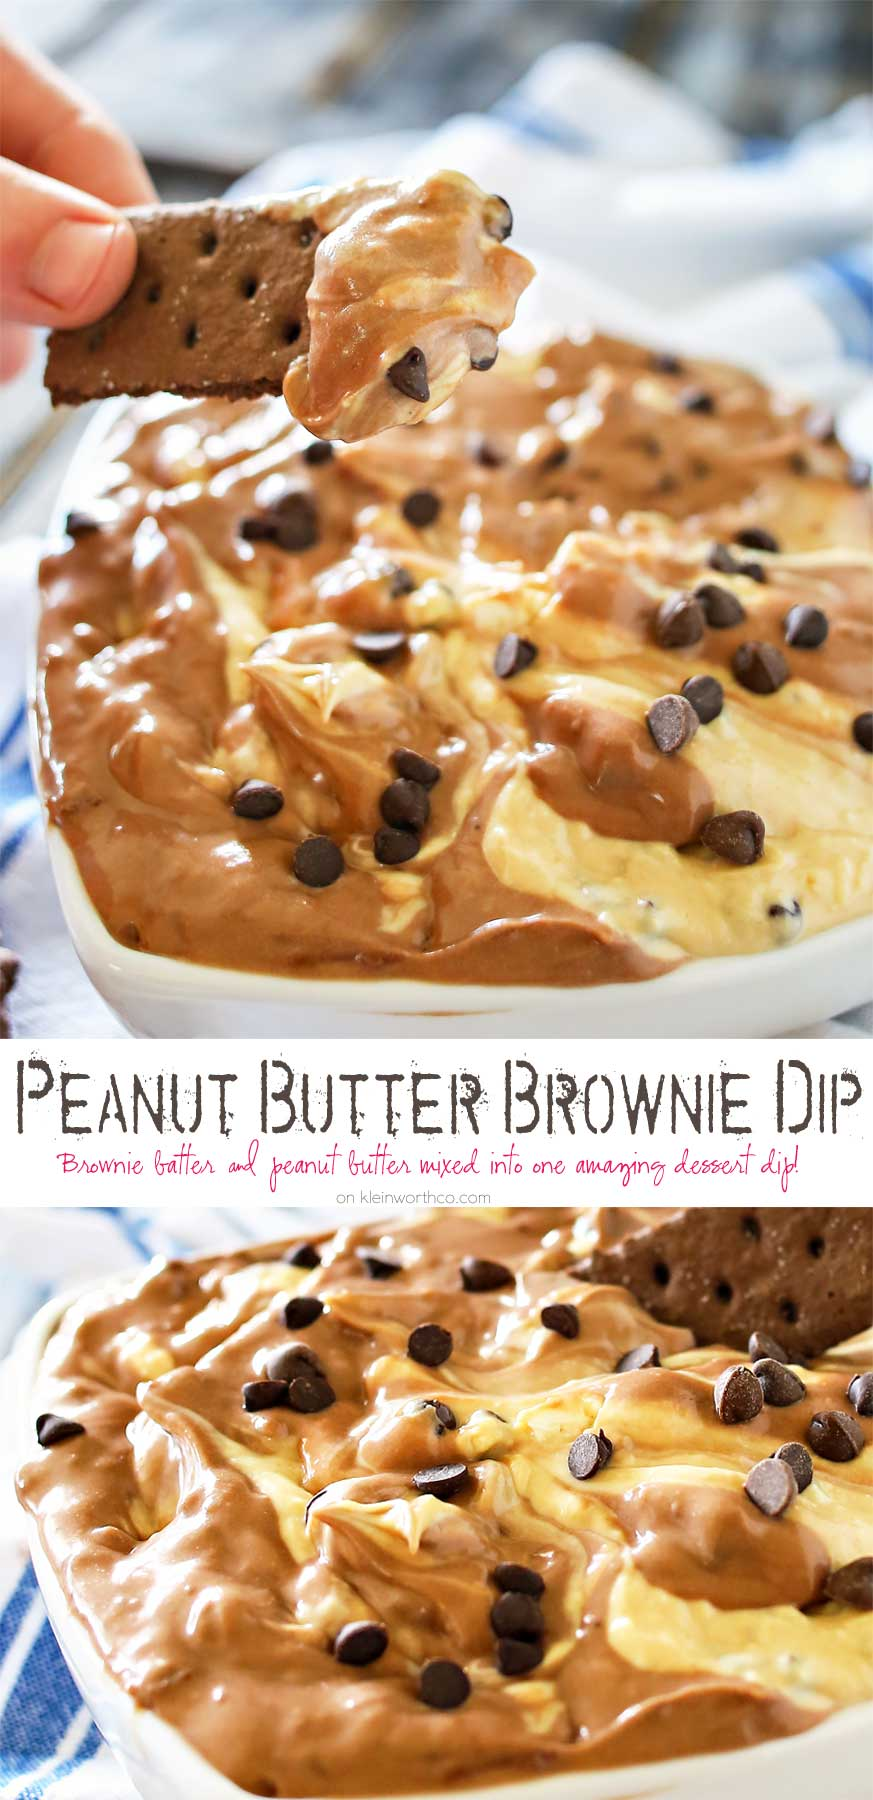 Peanut Butter Brownie Dip dessert